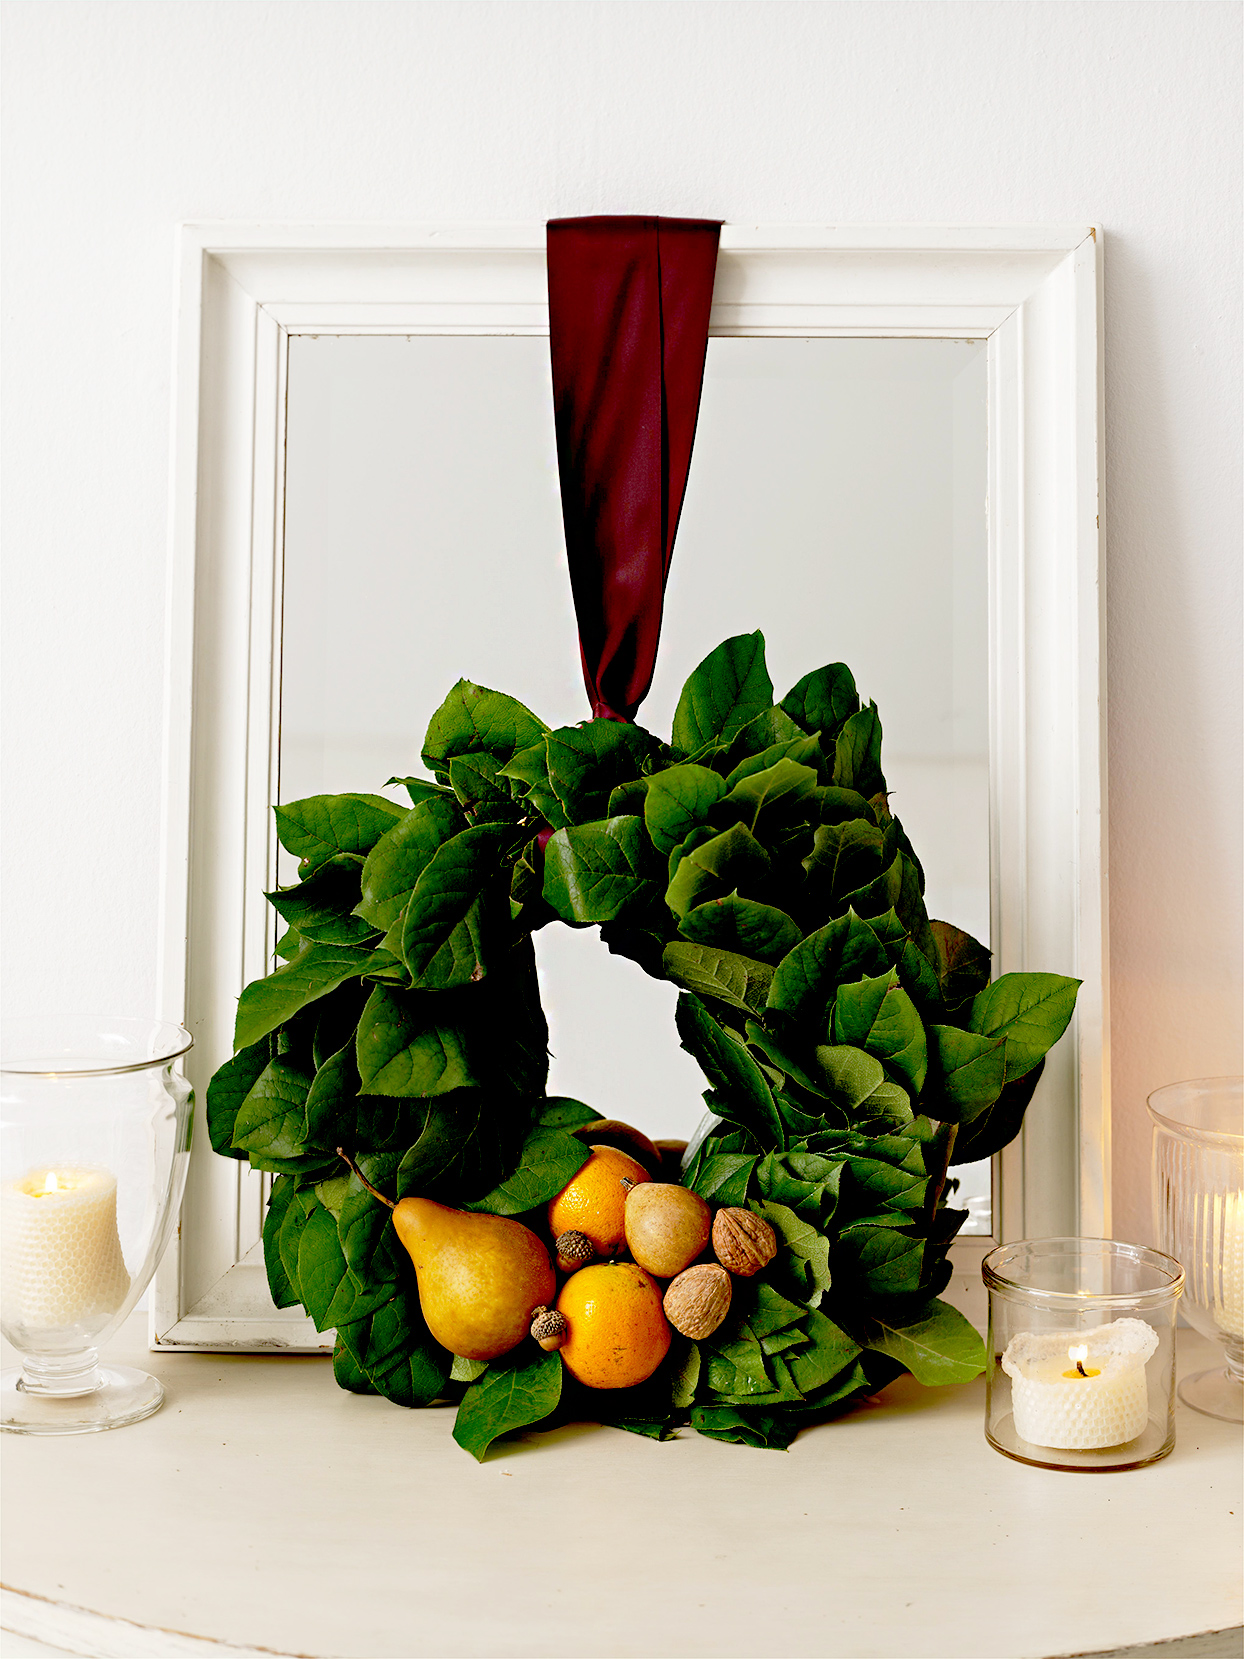 Wreath with dark green leaves and fruits